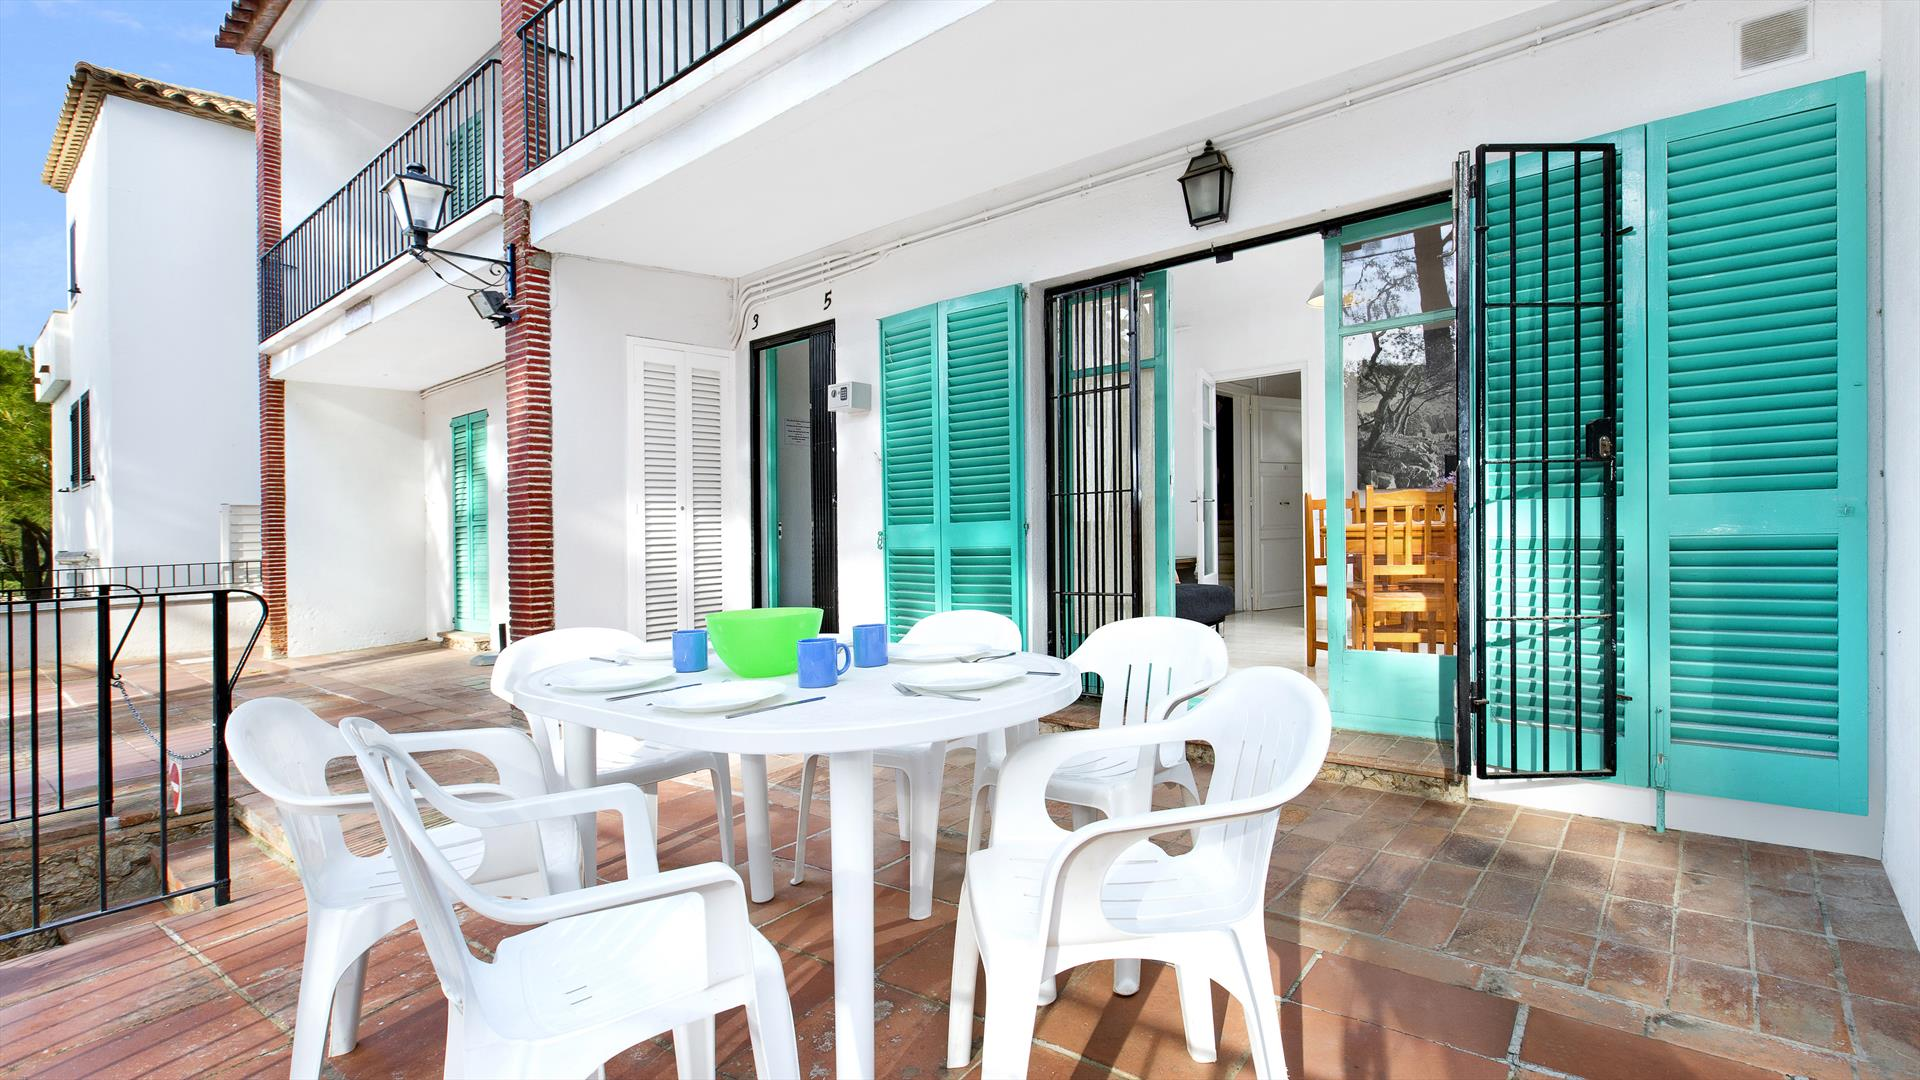 Rosa 1, Apartment in Llafranc, on the Costa Brava, Spain for 6 persons...